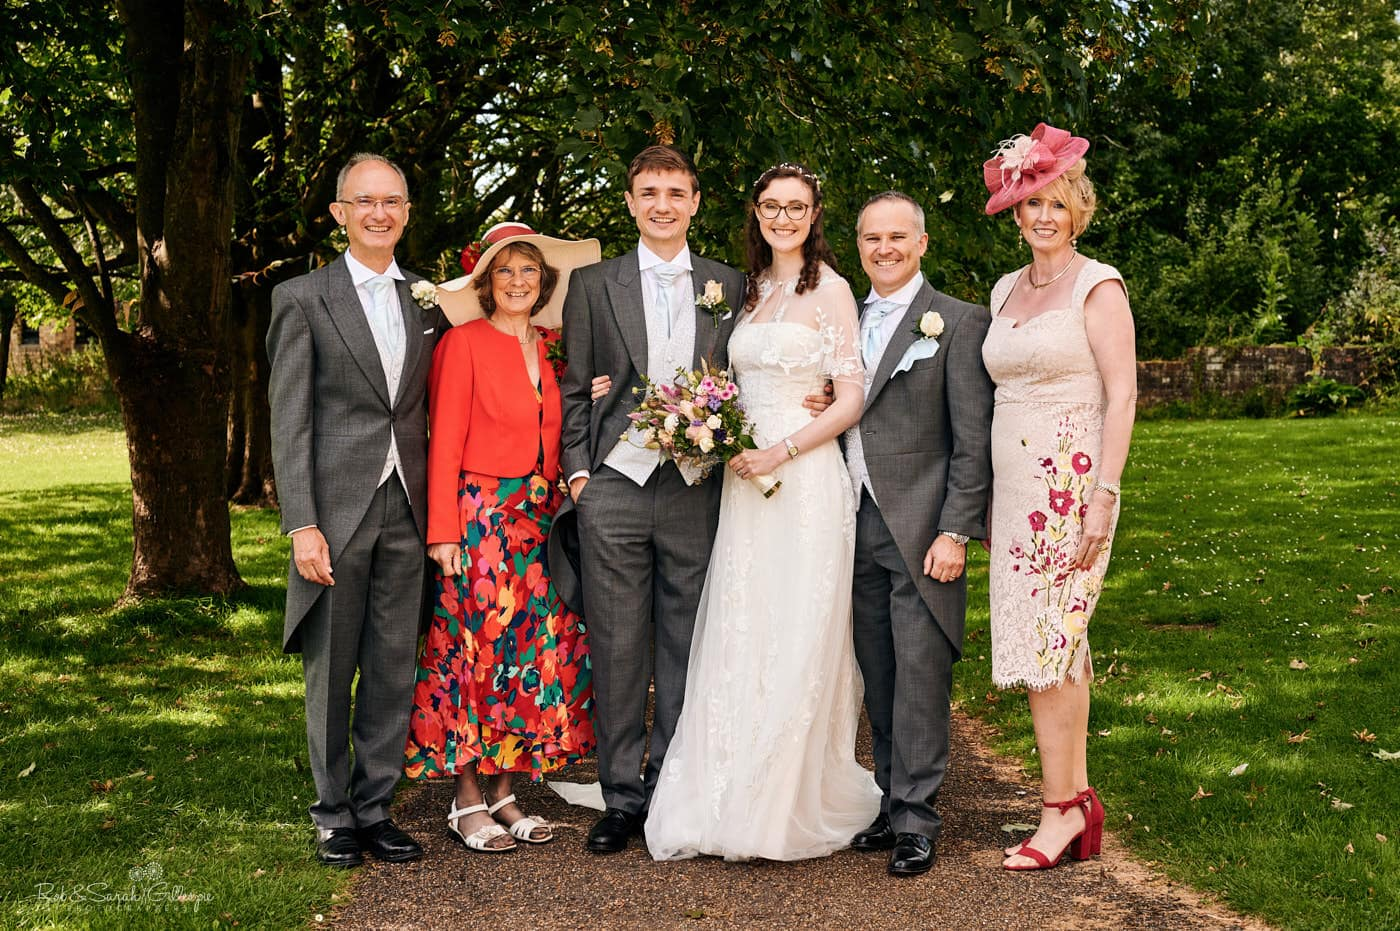 Avoncroft Museum wedding group photo